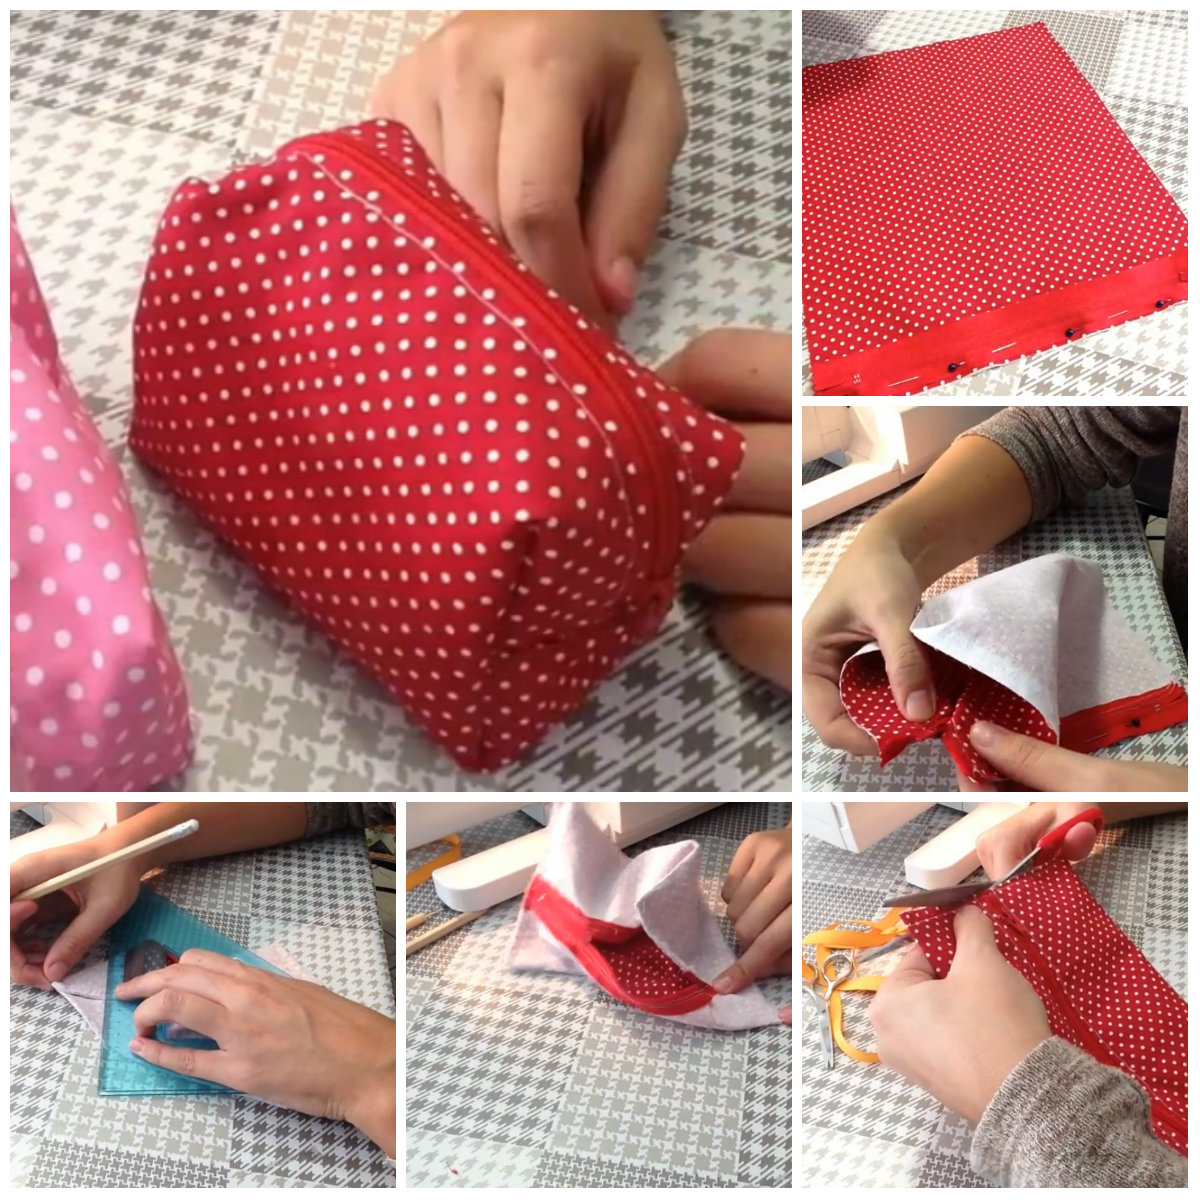 Come cucire una pochette video tutorial in italiano for Porta borse fai da te